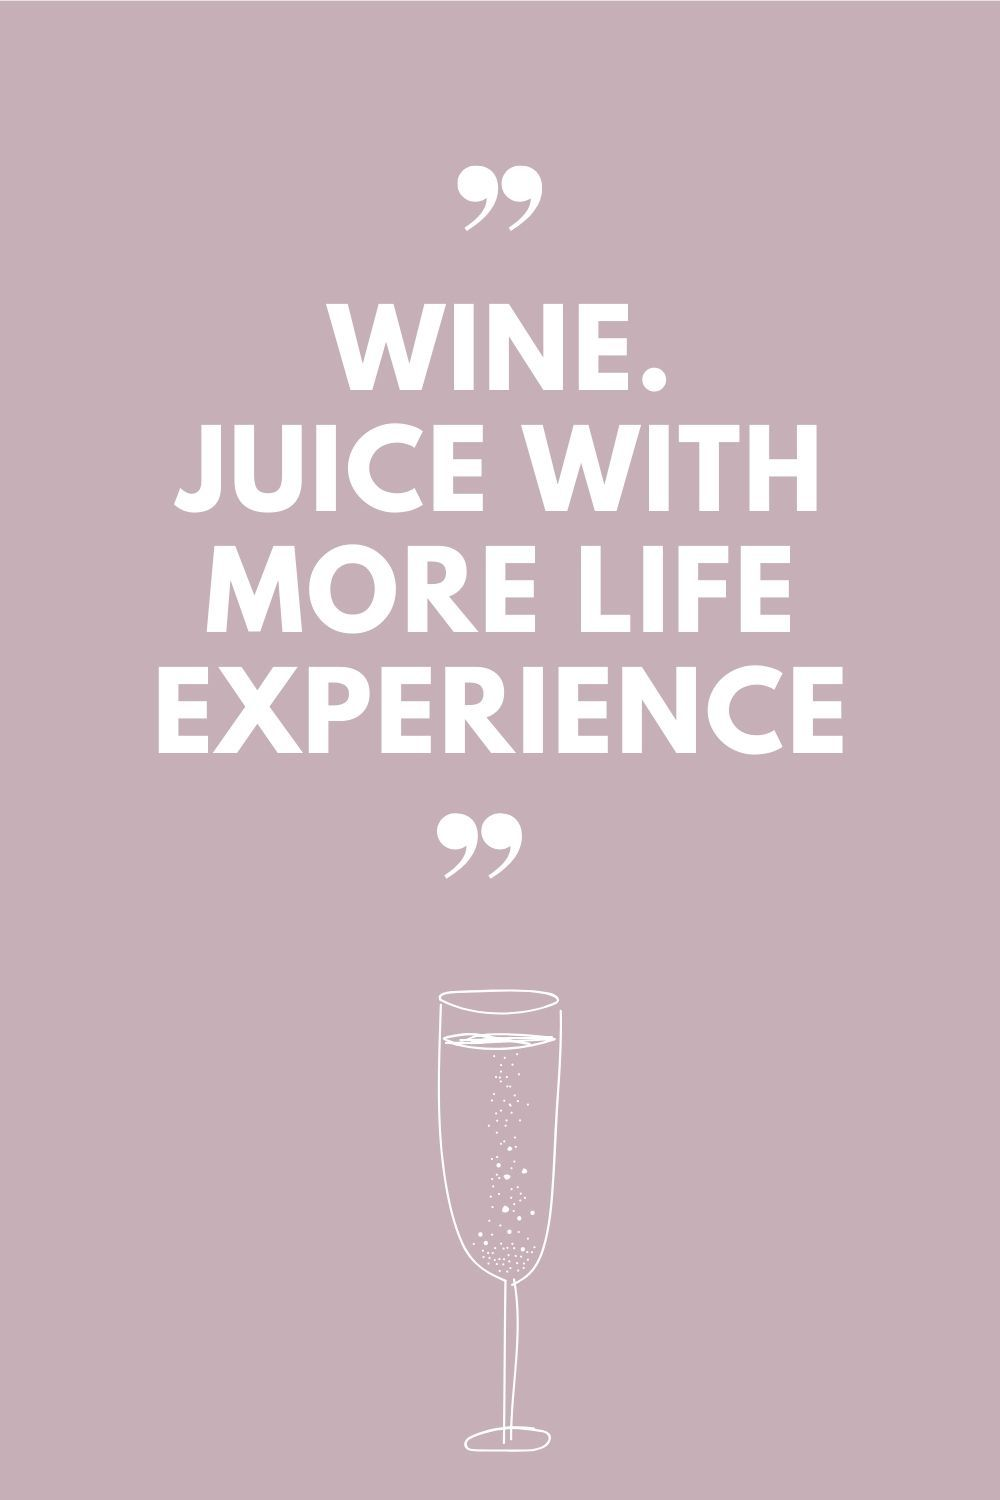 Funny Wine Quotes Wine Quotes Funny Drinking Quotes Wine Quotes Funny